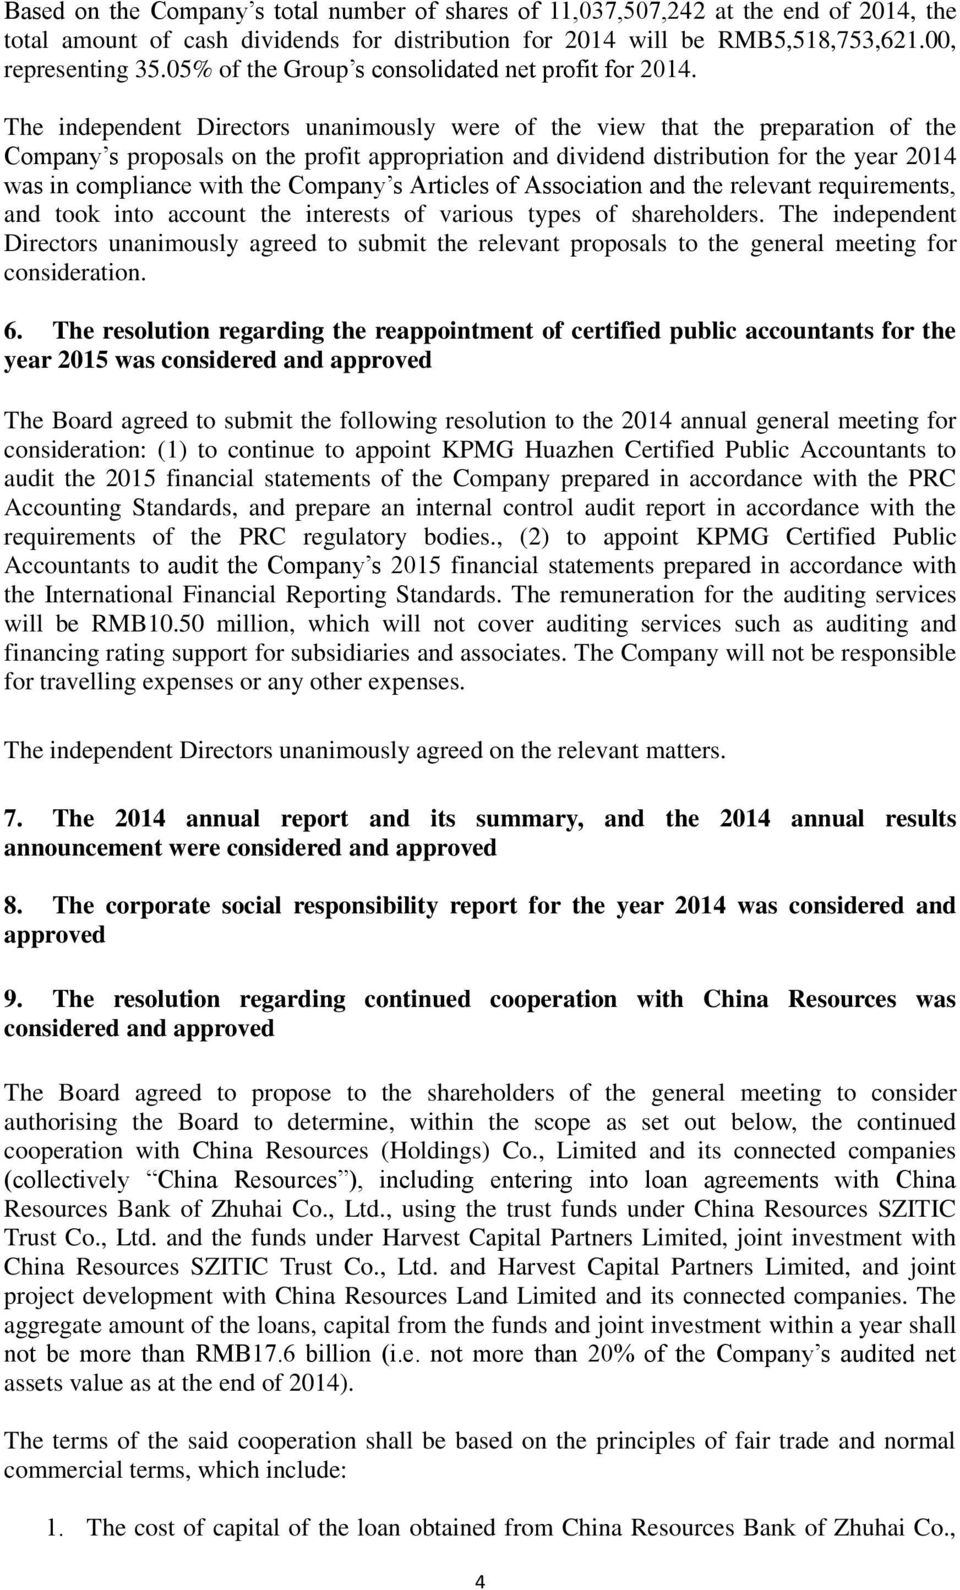 The independent Directors unanimously were of the view that the preparation of the Company s proposals on the profit appropriation and dividend distribution for the year 2014 was in compliance with